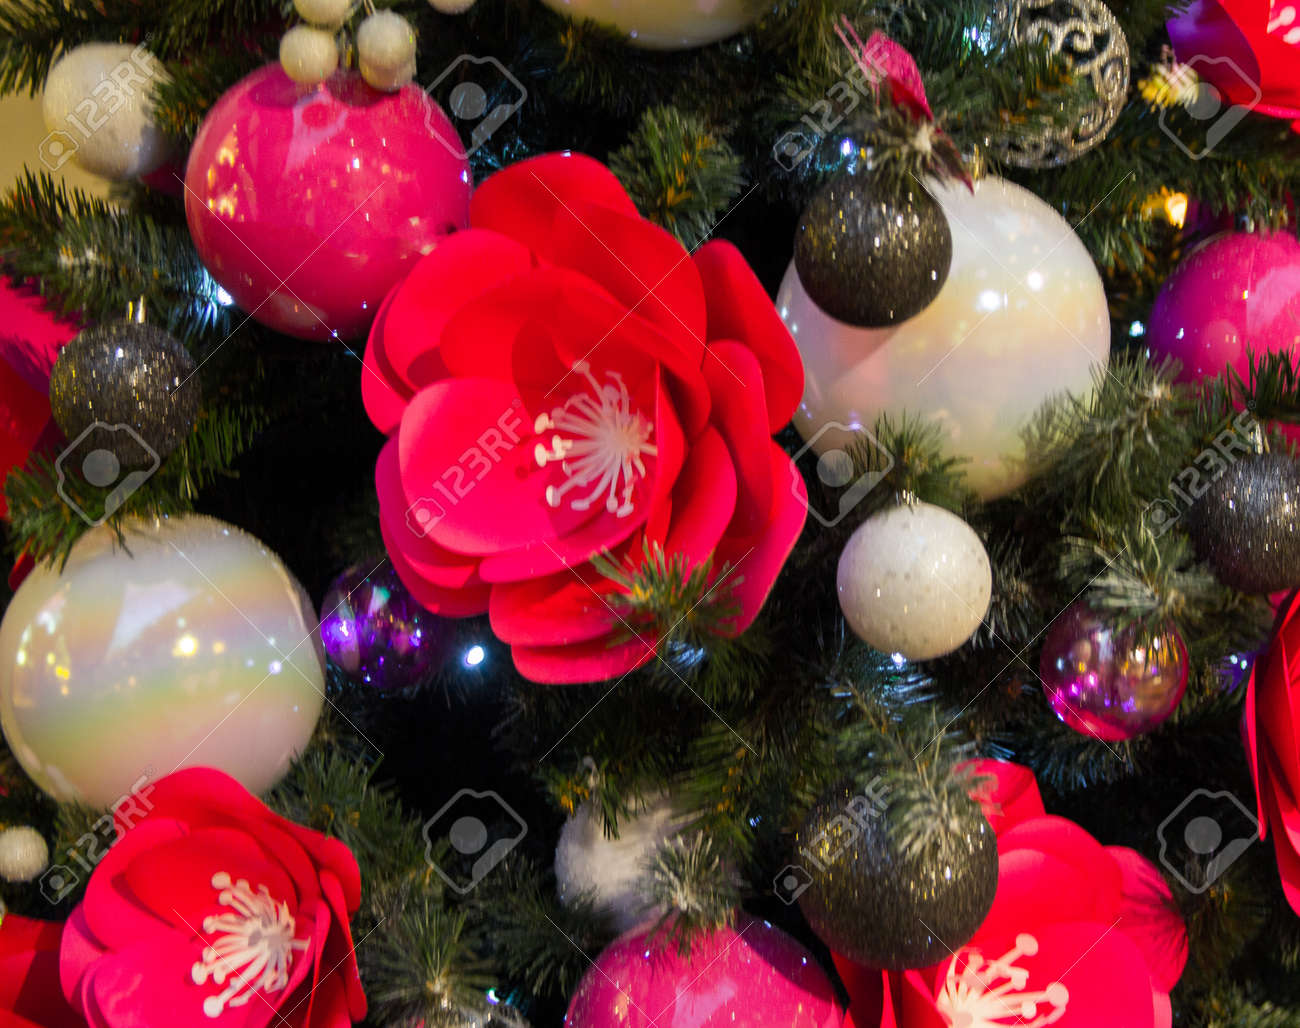 Large pink flowers and white balls on a christmas tree a substrate large pink flowers and white balls on a christmas tree a substrate stock photo mightylinksfo